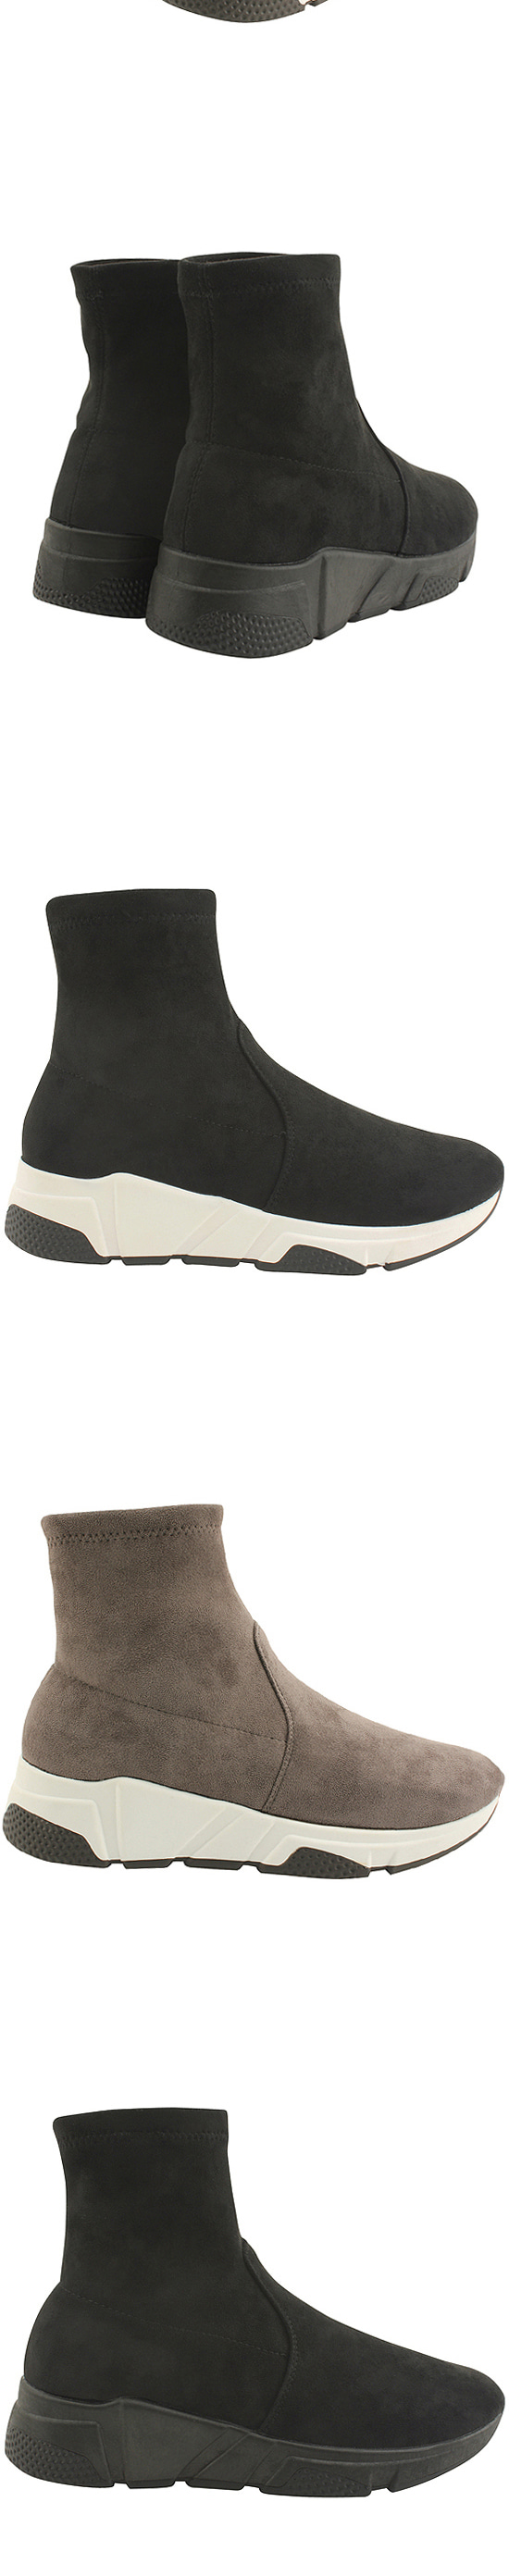 Sneakers Raised Socks Ankle Boots All Gum